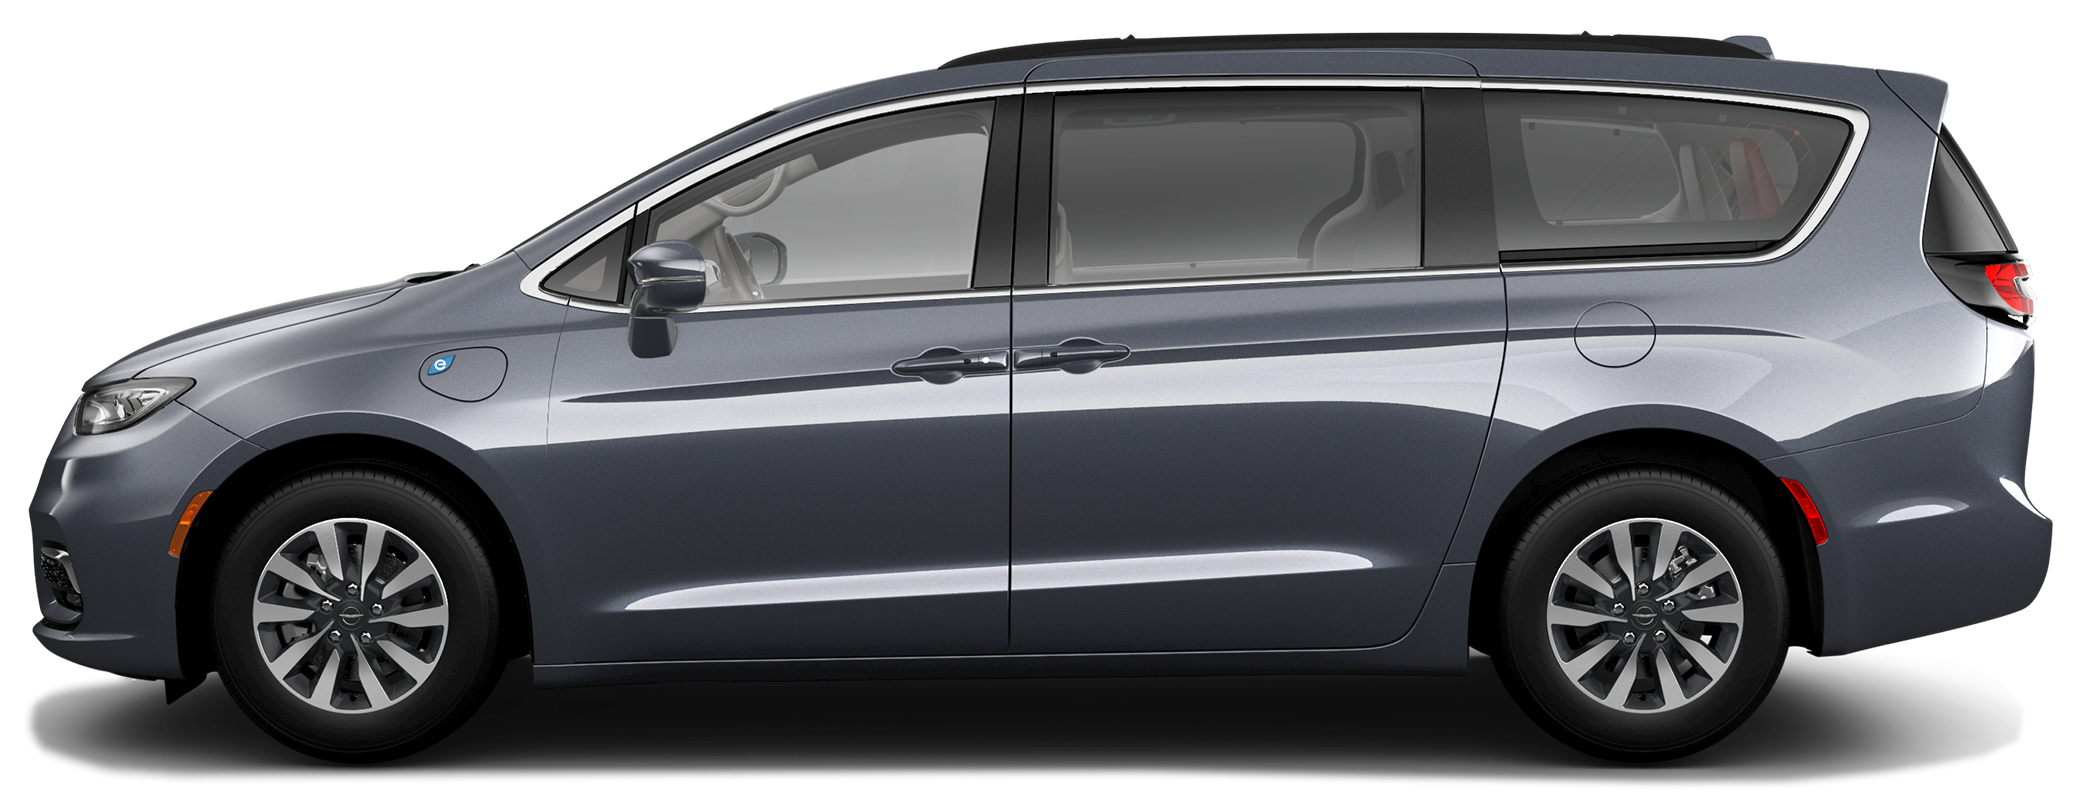 2021 Chrysler Pacifica Hybrid Van Touring